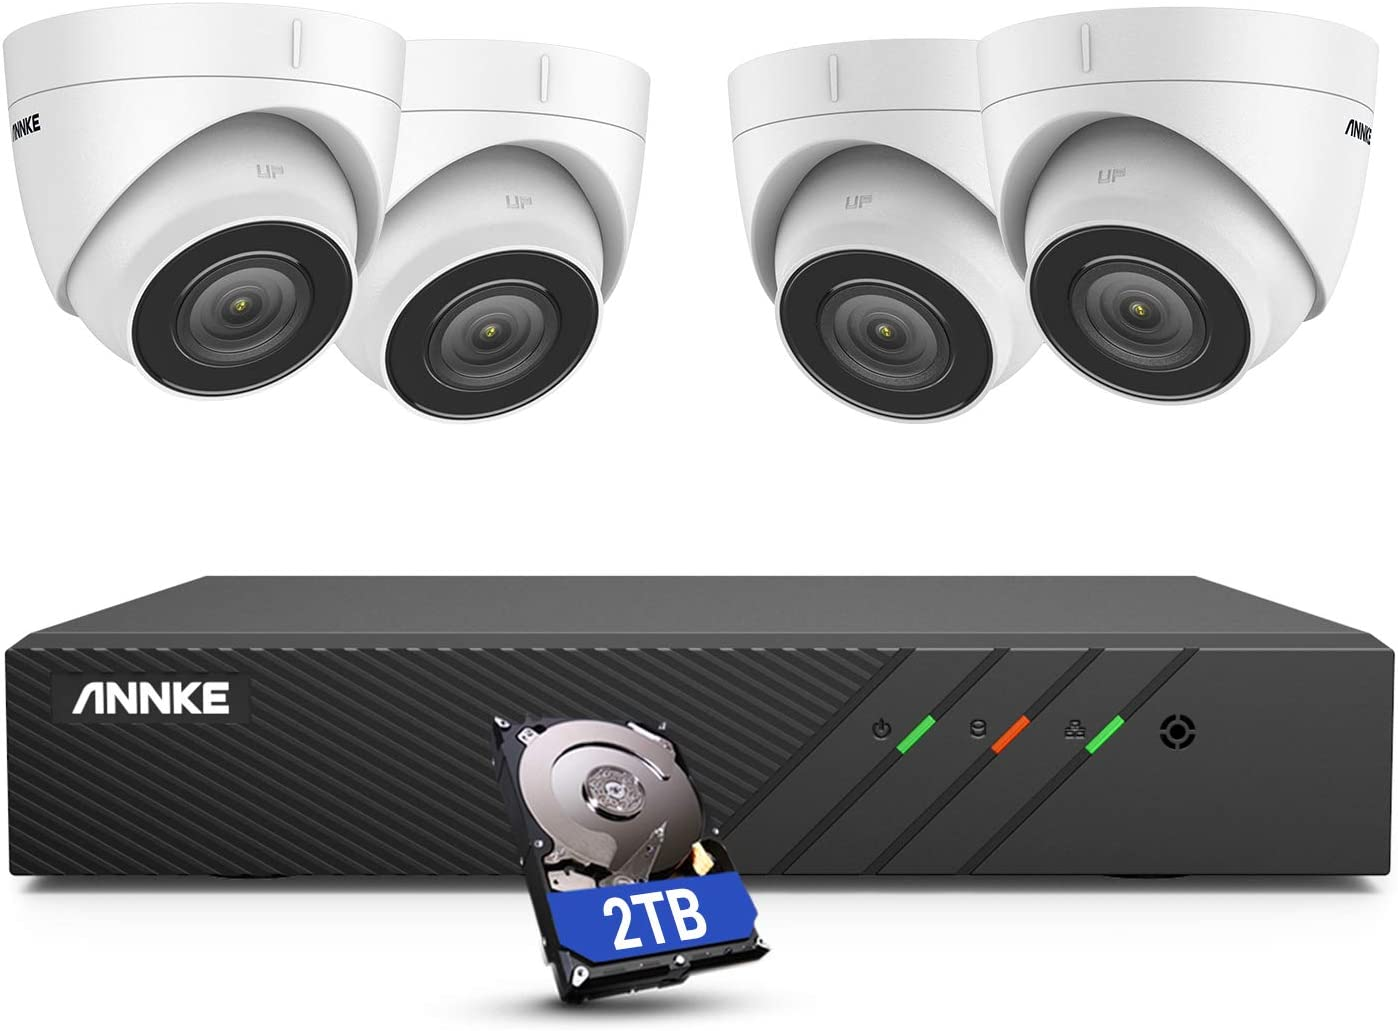 ANNKE H500 8CH Turret PoE Security Camera System with 6MP H.265+ NVR, 4X 5MP Outdoor IP Camera,2TB HDD, Audio Recording, 100ft EXIR 2.0 Color Night Vision, IP67 Weatherproof, 24/7 Video Surveillance